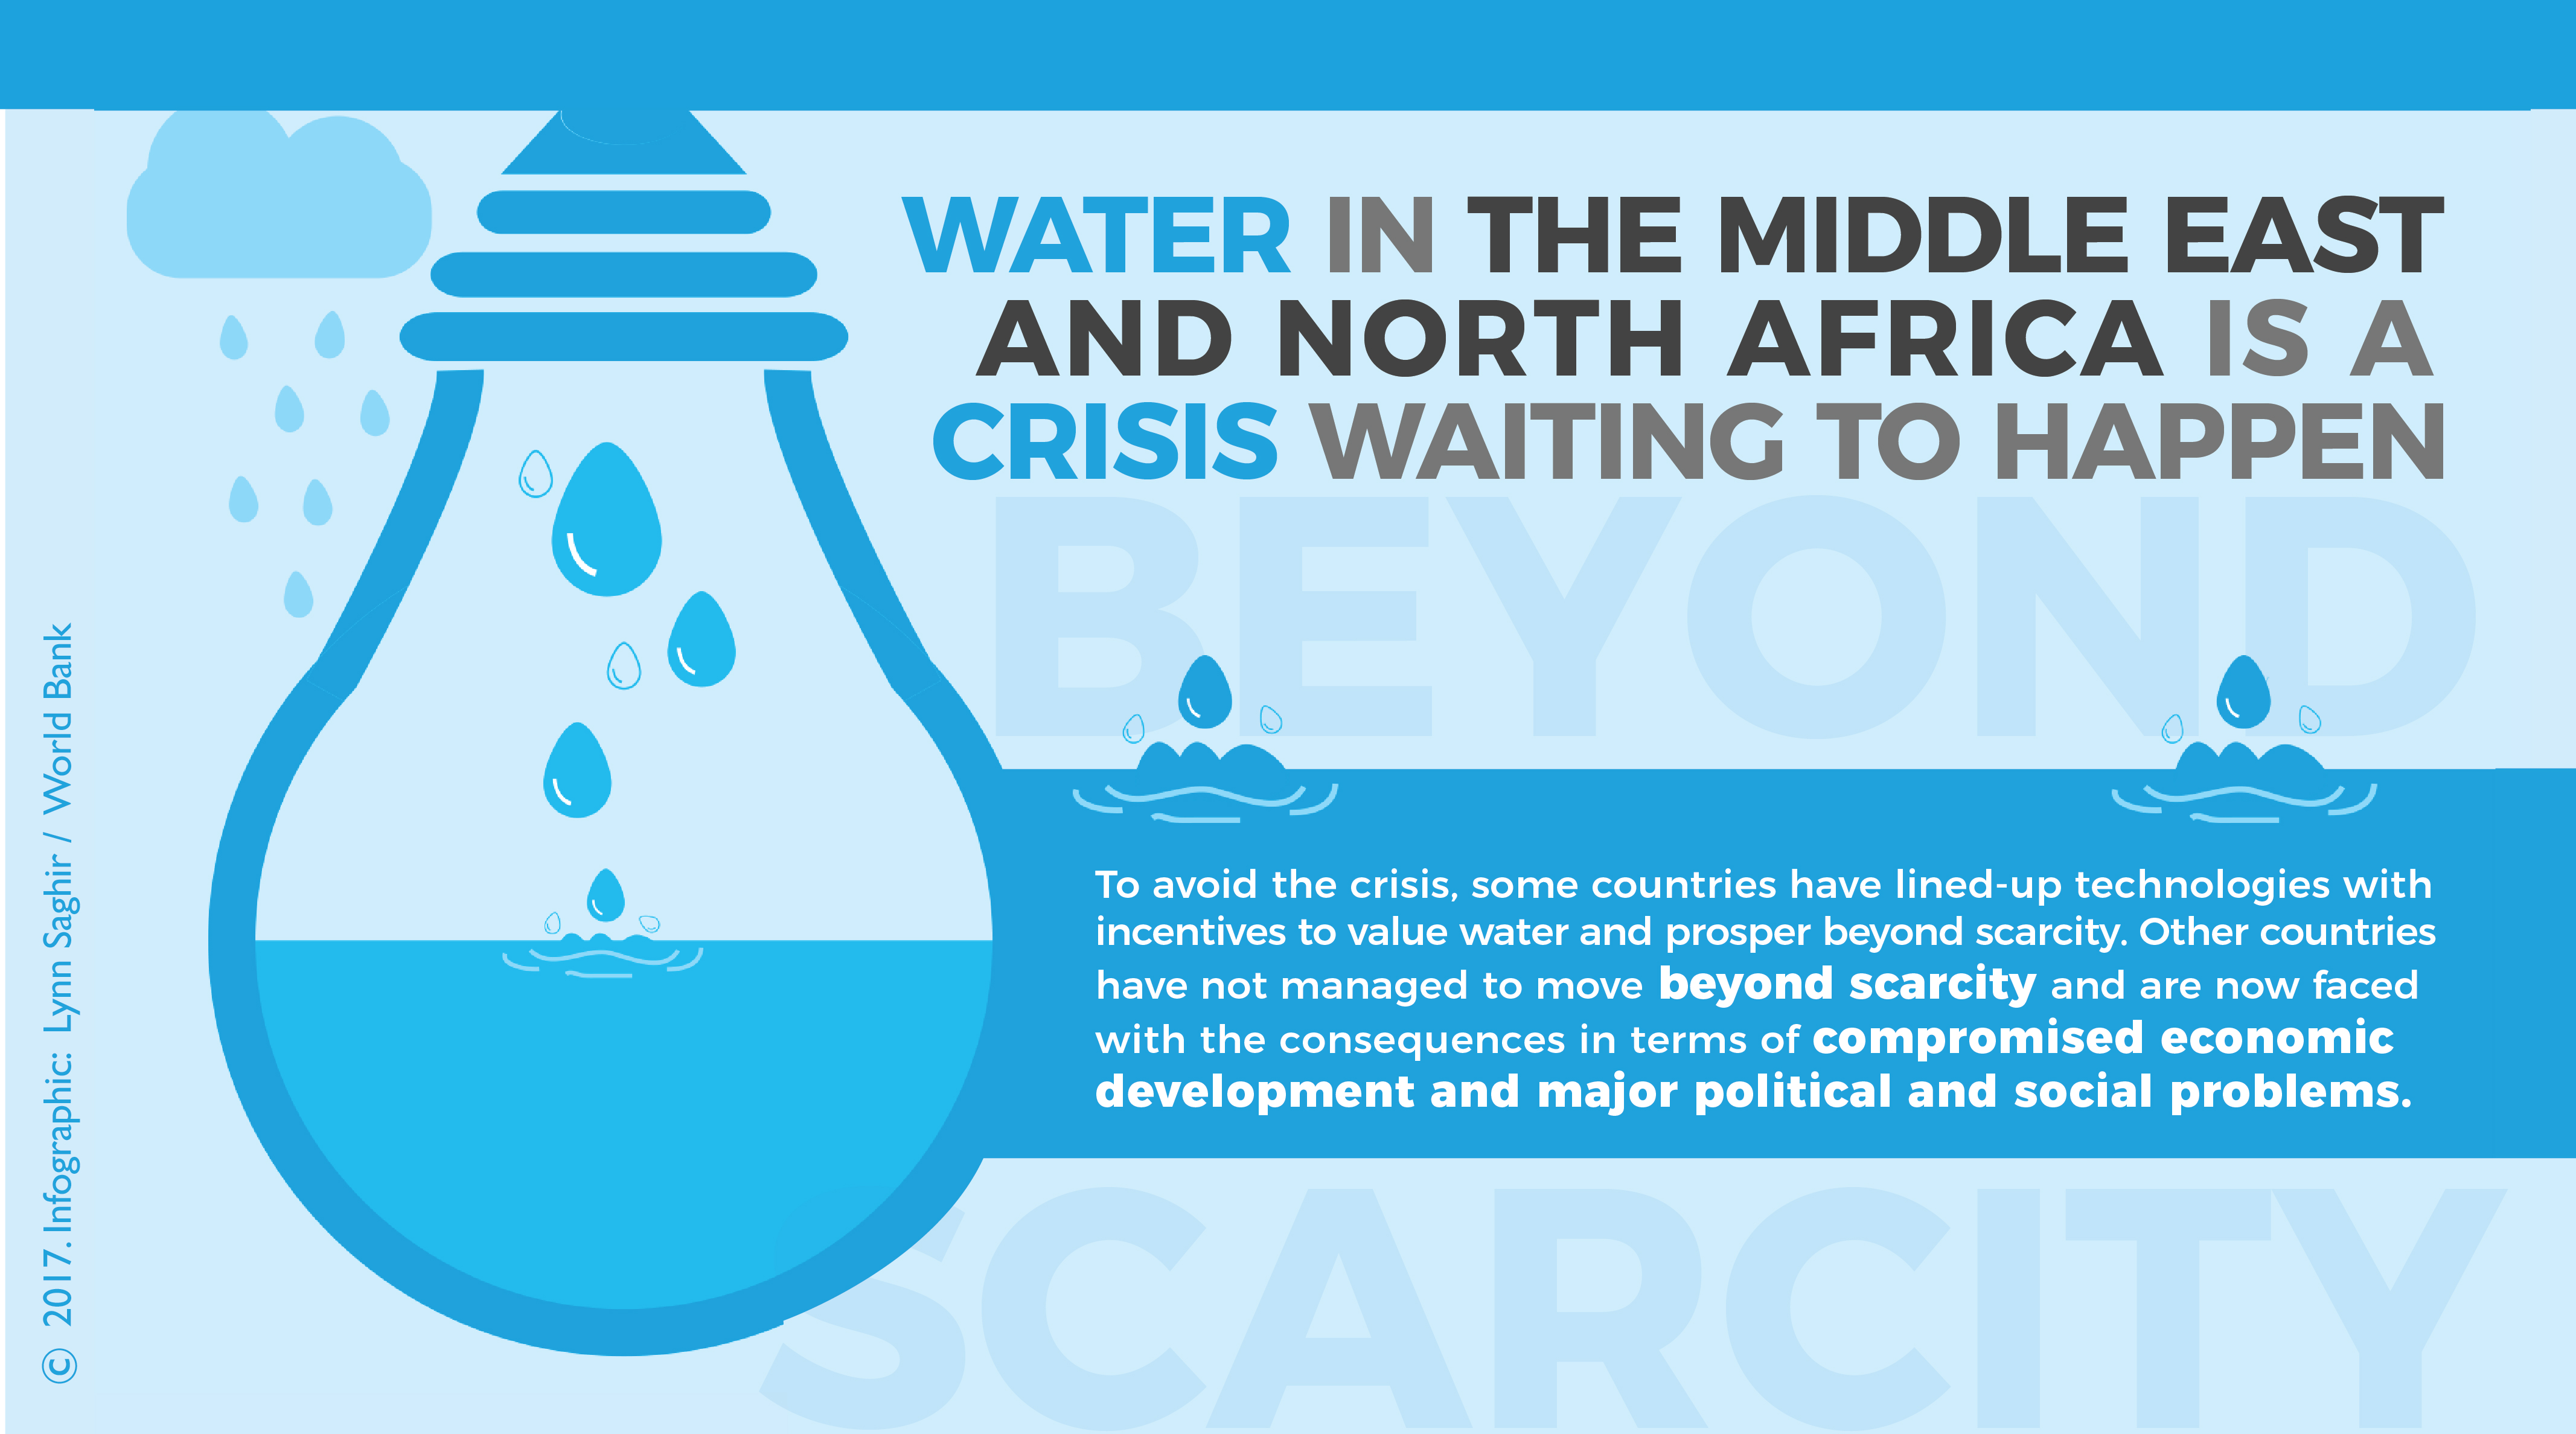 How to Move Beyond Water Scarcity in the Middle East and North Africa